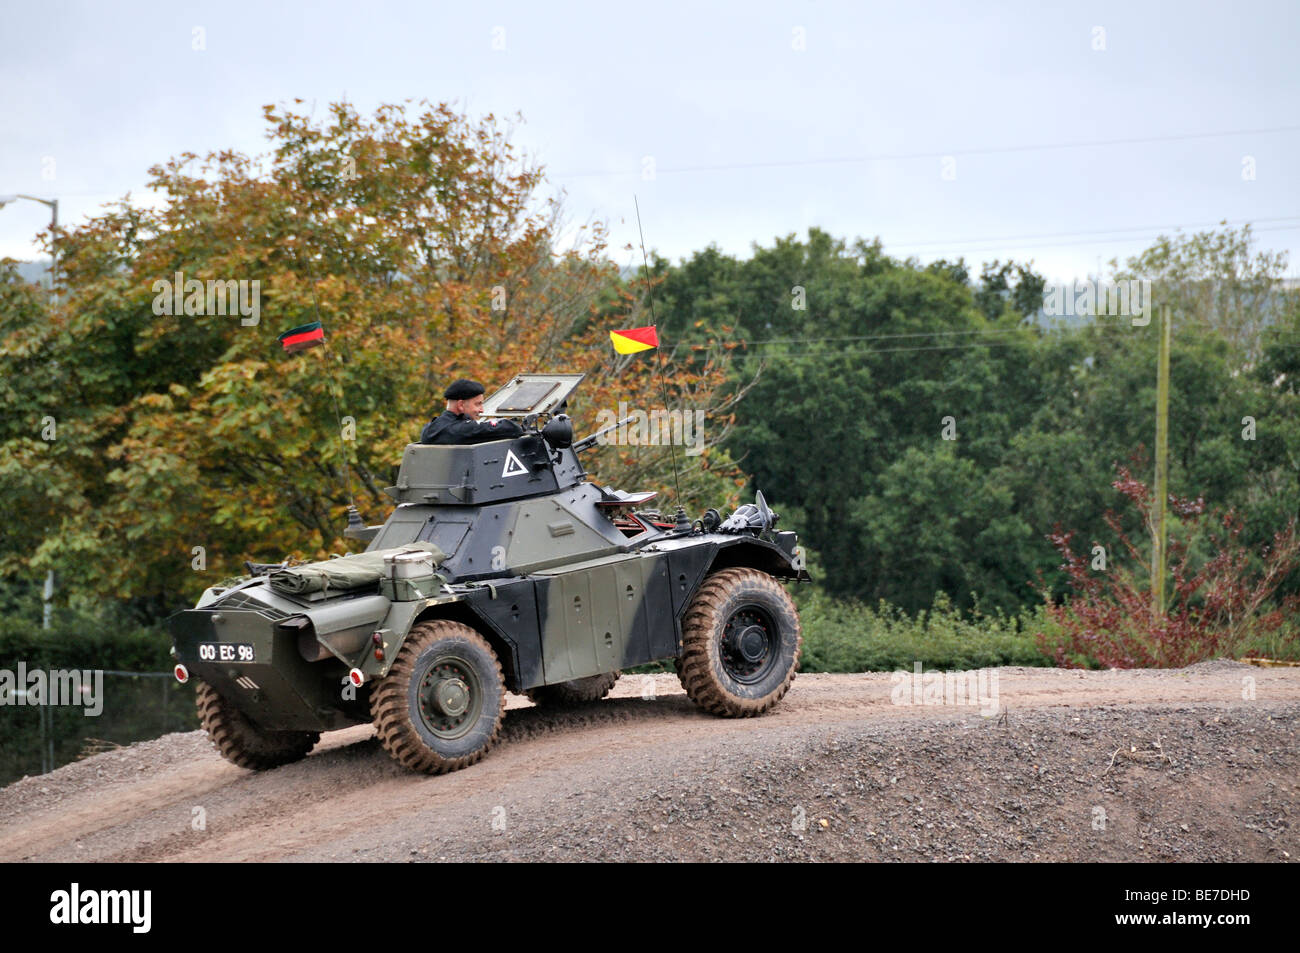 British military Ferret Scout armoured vehicle - Stock Image